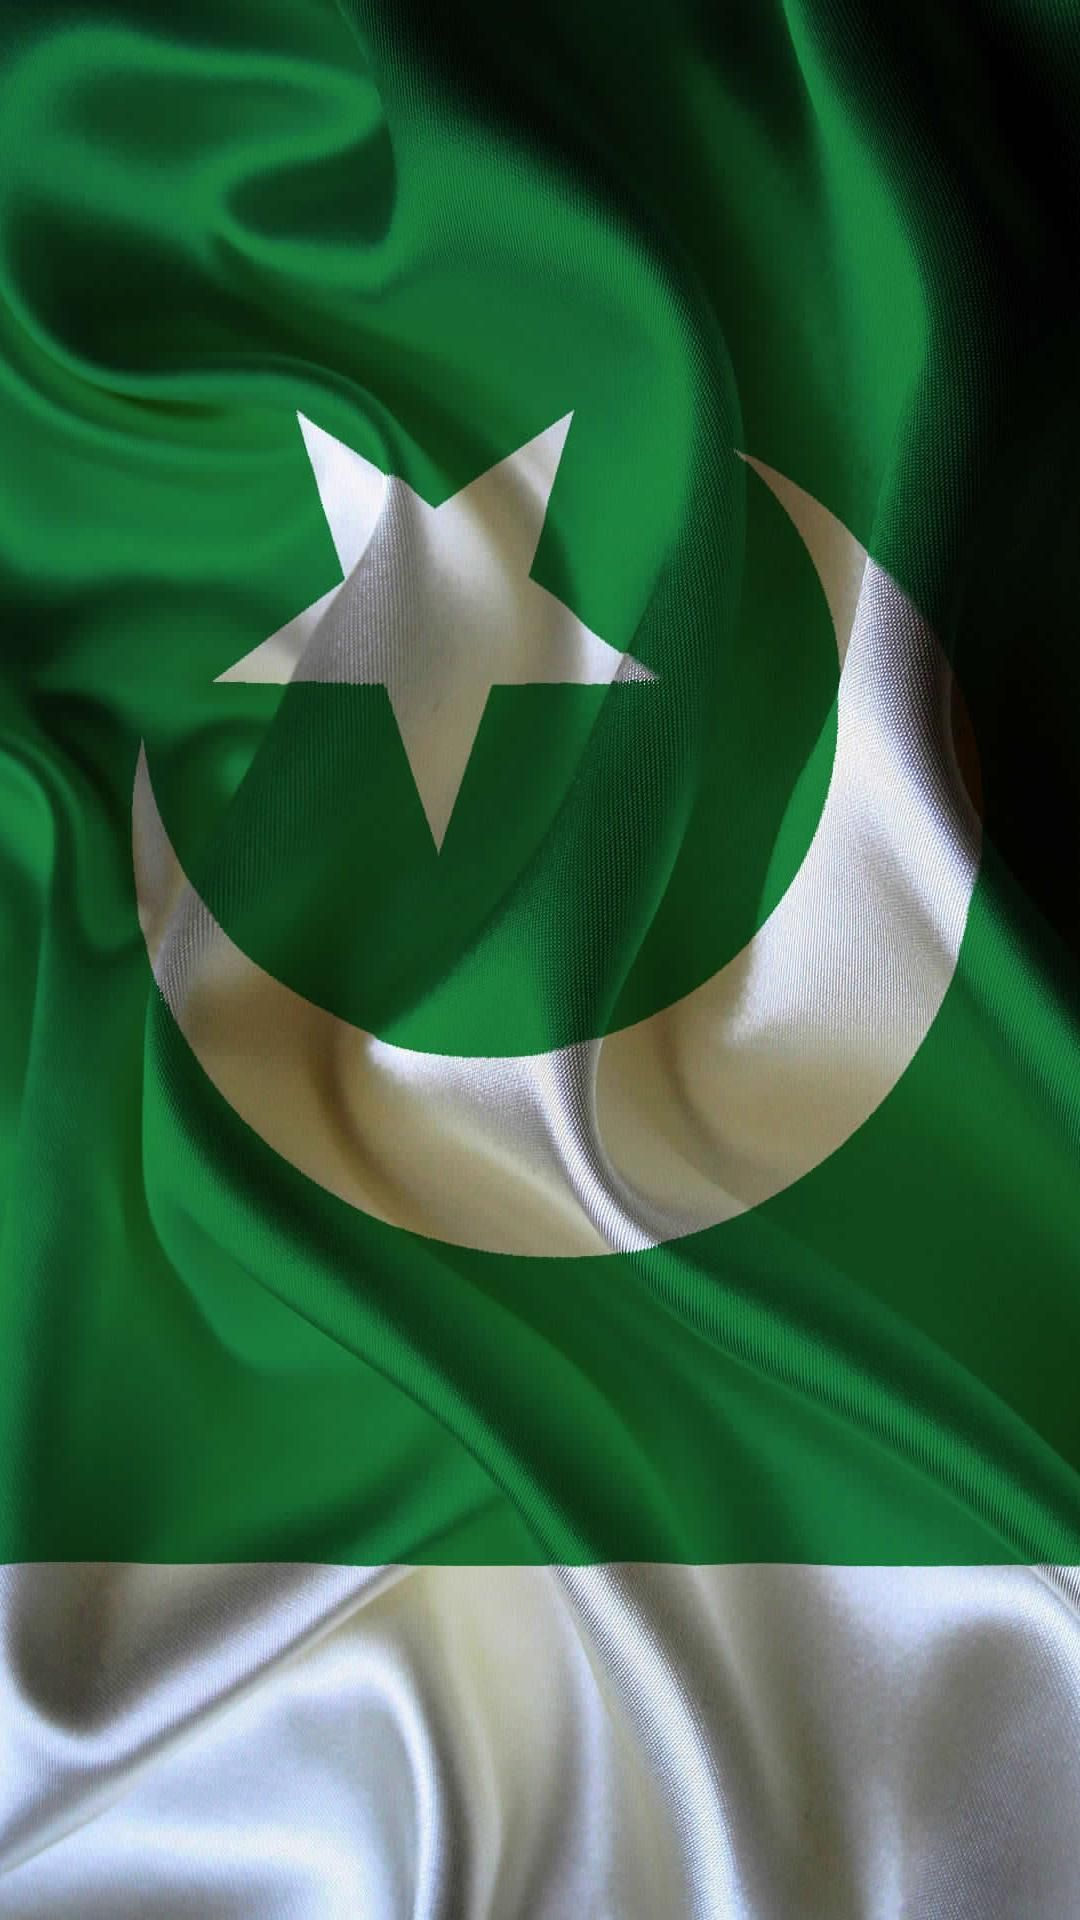 توكلت على الله Pakistan Flag Wallpaper Pakistan Flag Pakistani Flag